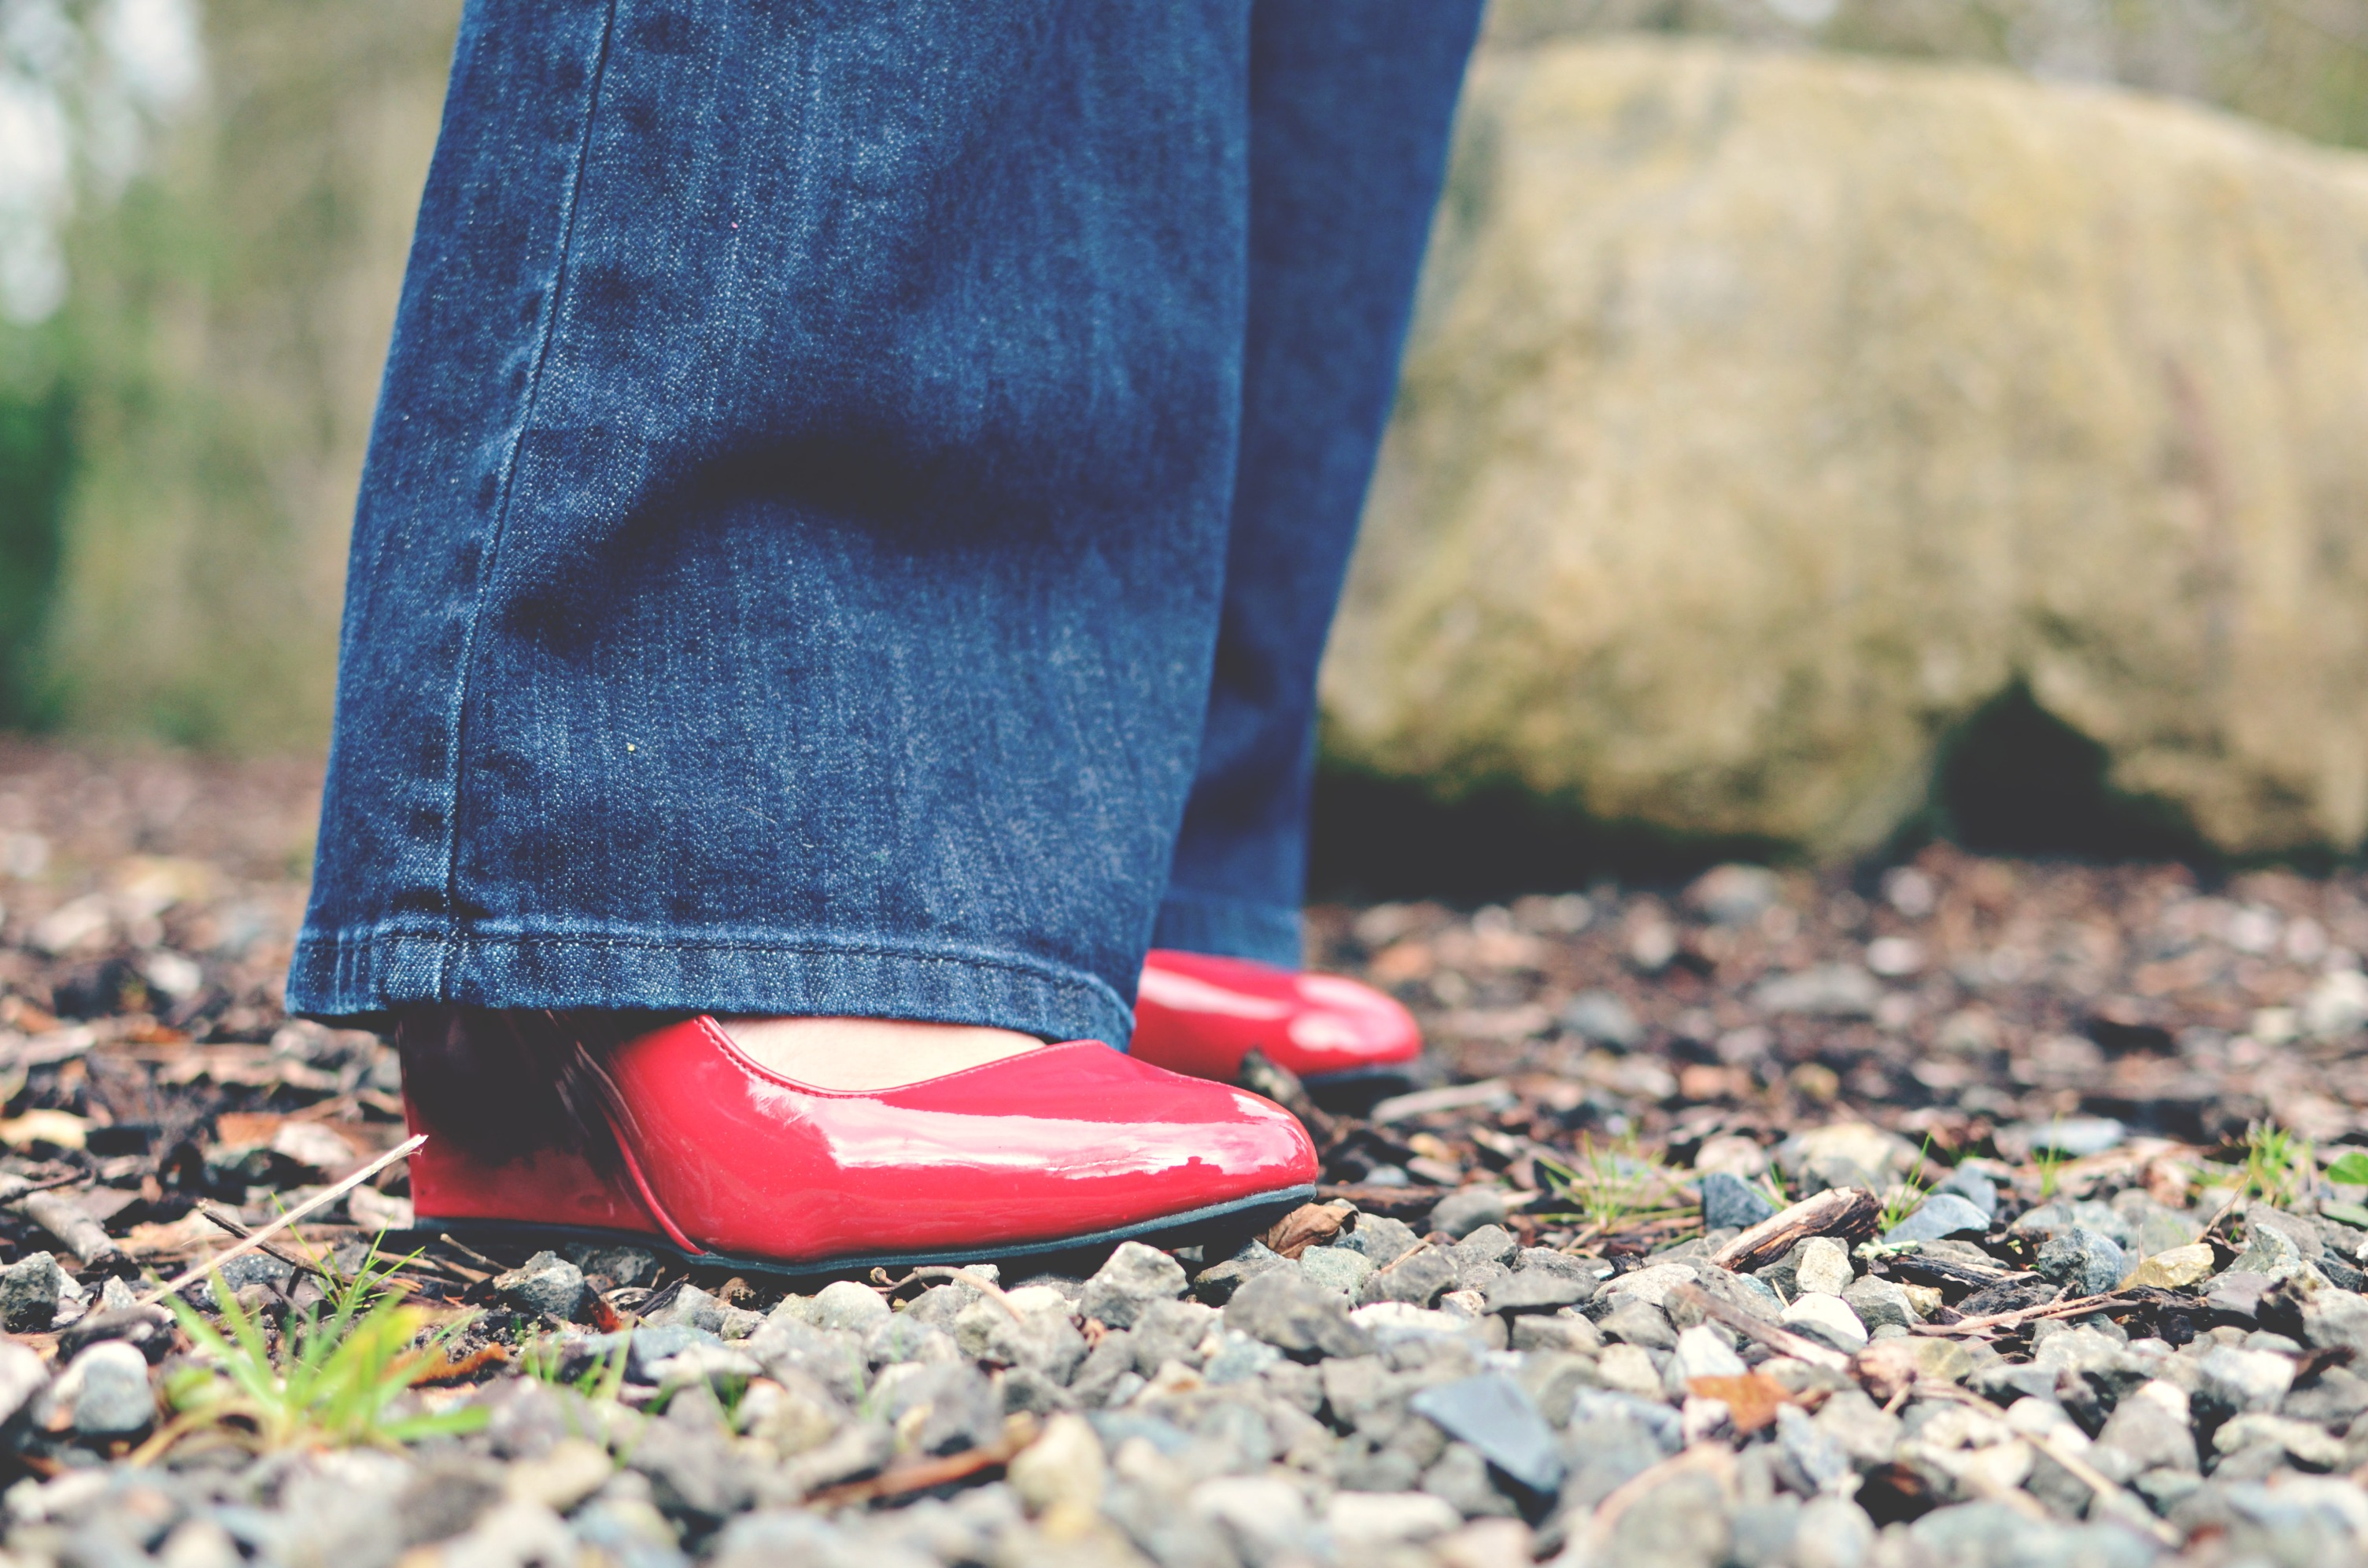 4d9f54408 ... patent leather red wedges at home and knew they would go perfectly.  That is why this is a spruce-up post